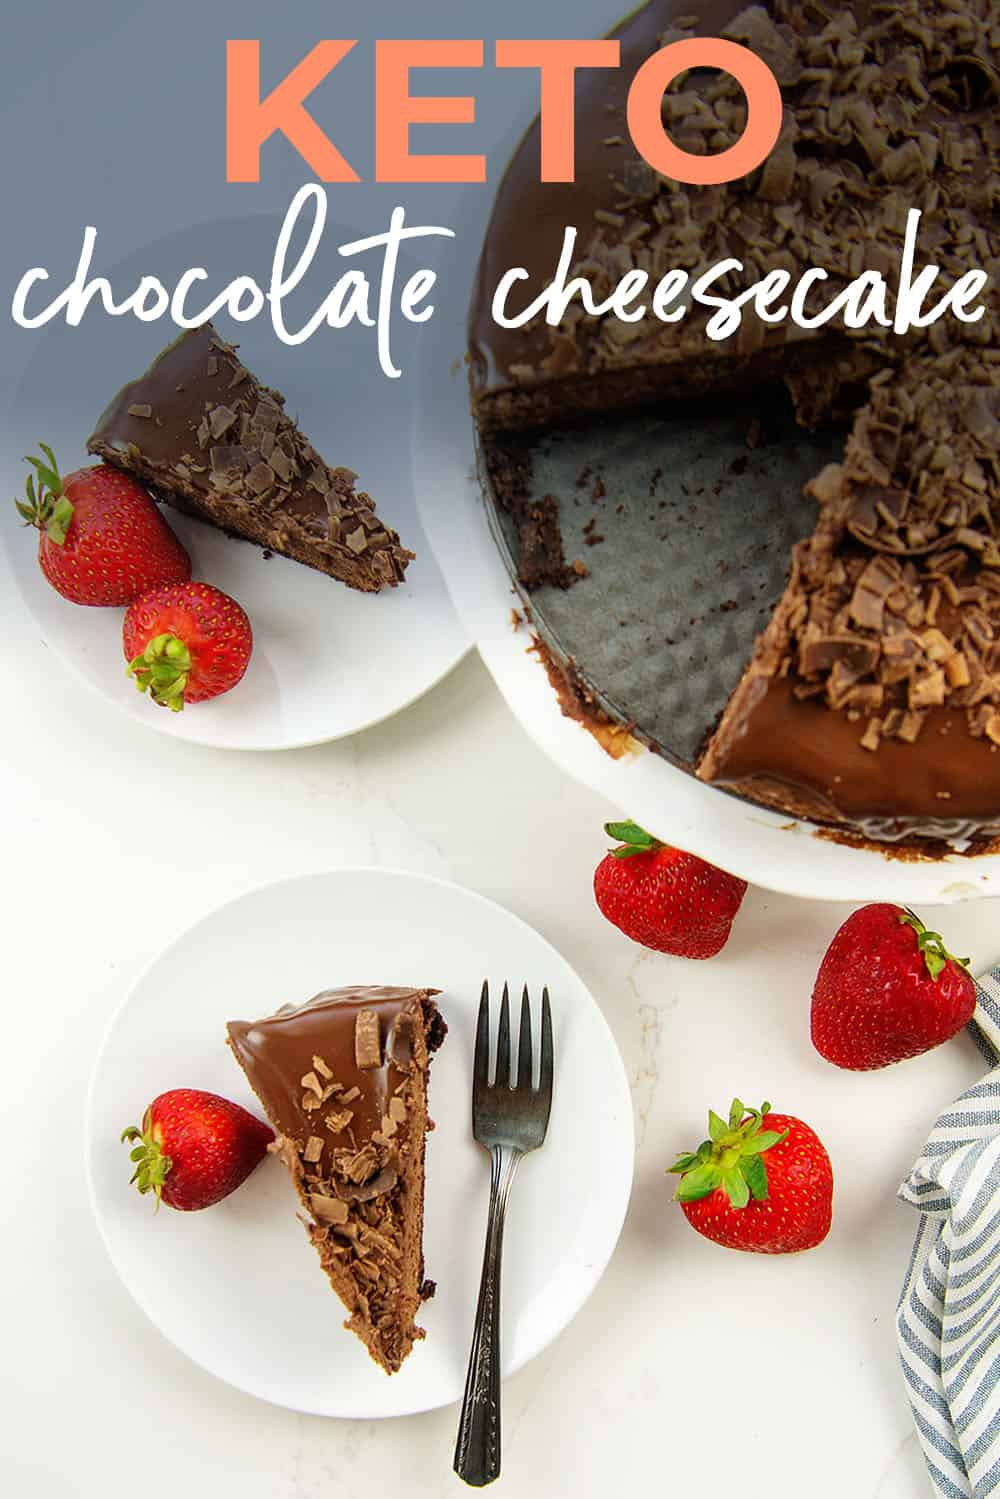 sliced chocolate cheesecake on white plates with text for Pinterest.